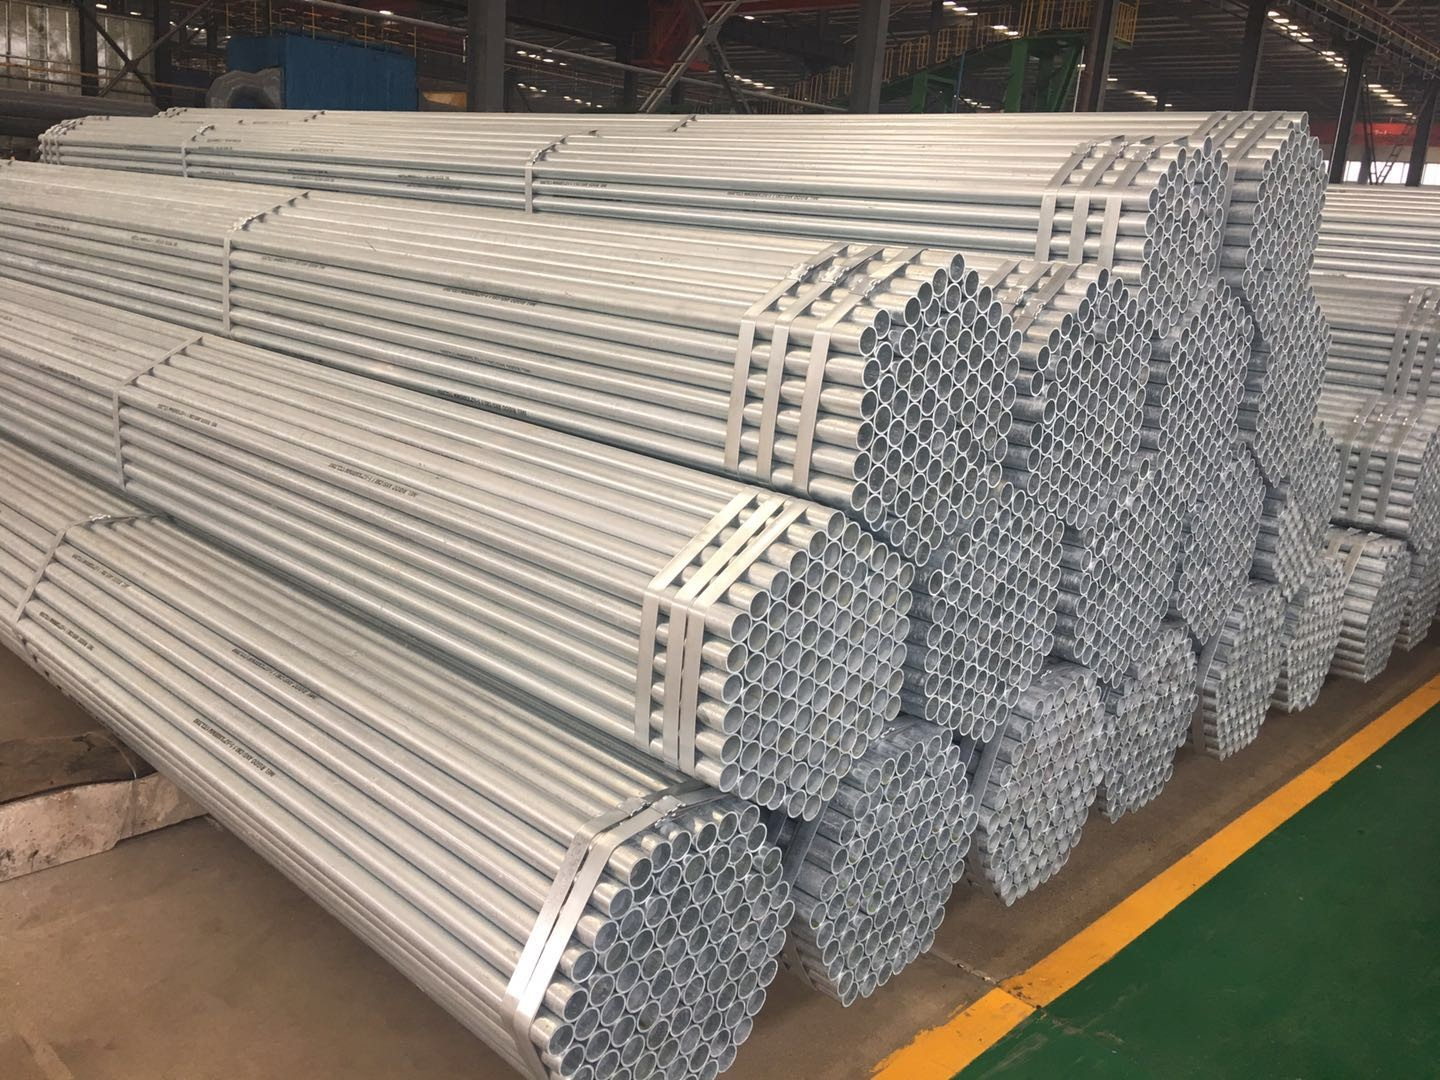 Hot Galvanized Pipes Manufacturers, Hot Galvanized Pipes Factory, Supply Hot Galvanized Pipes